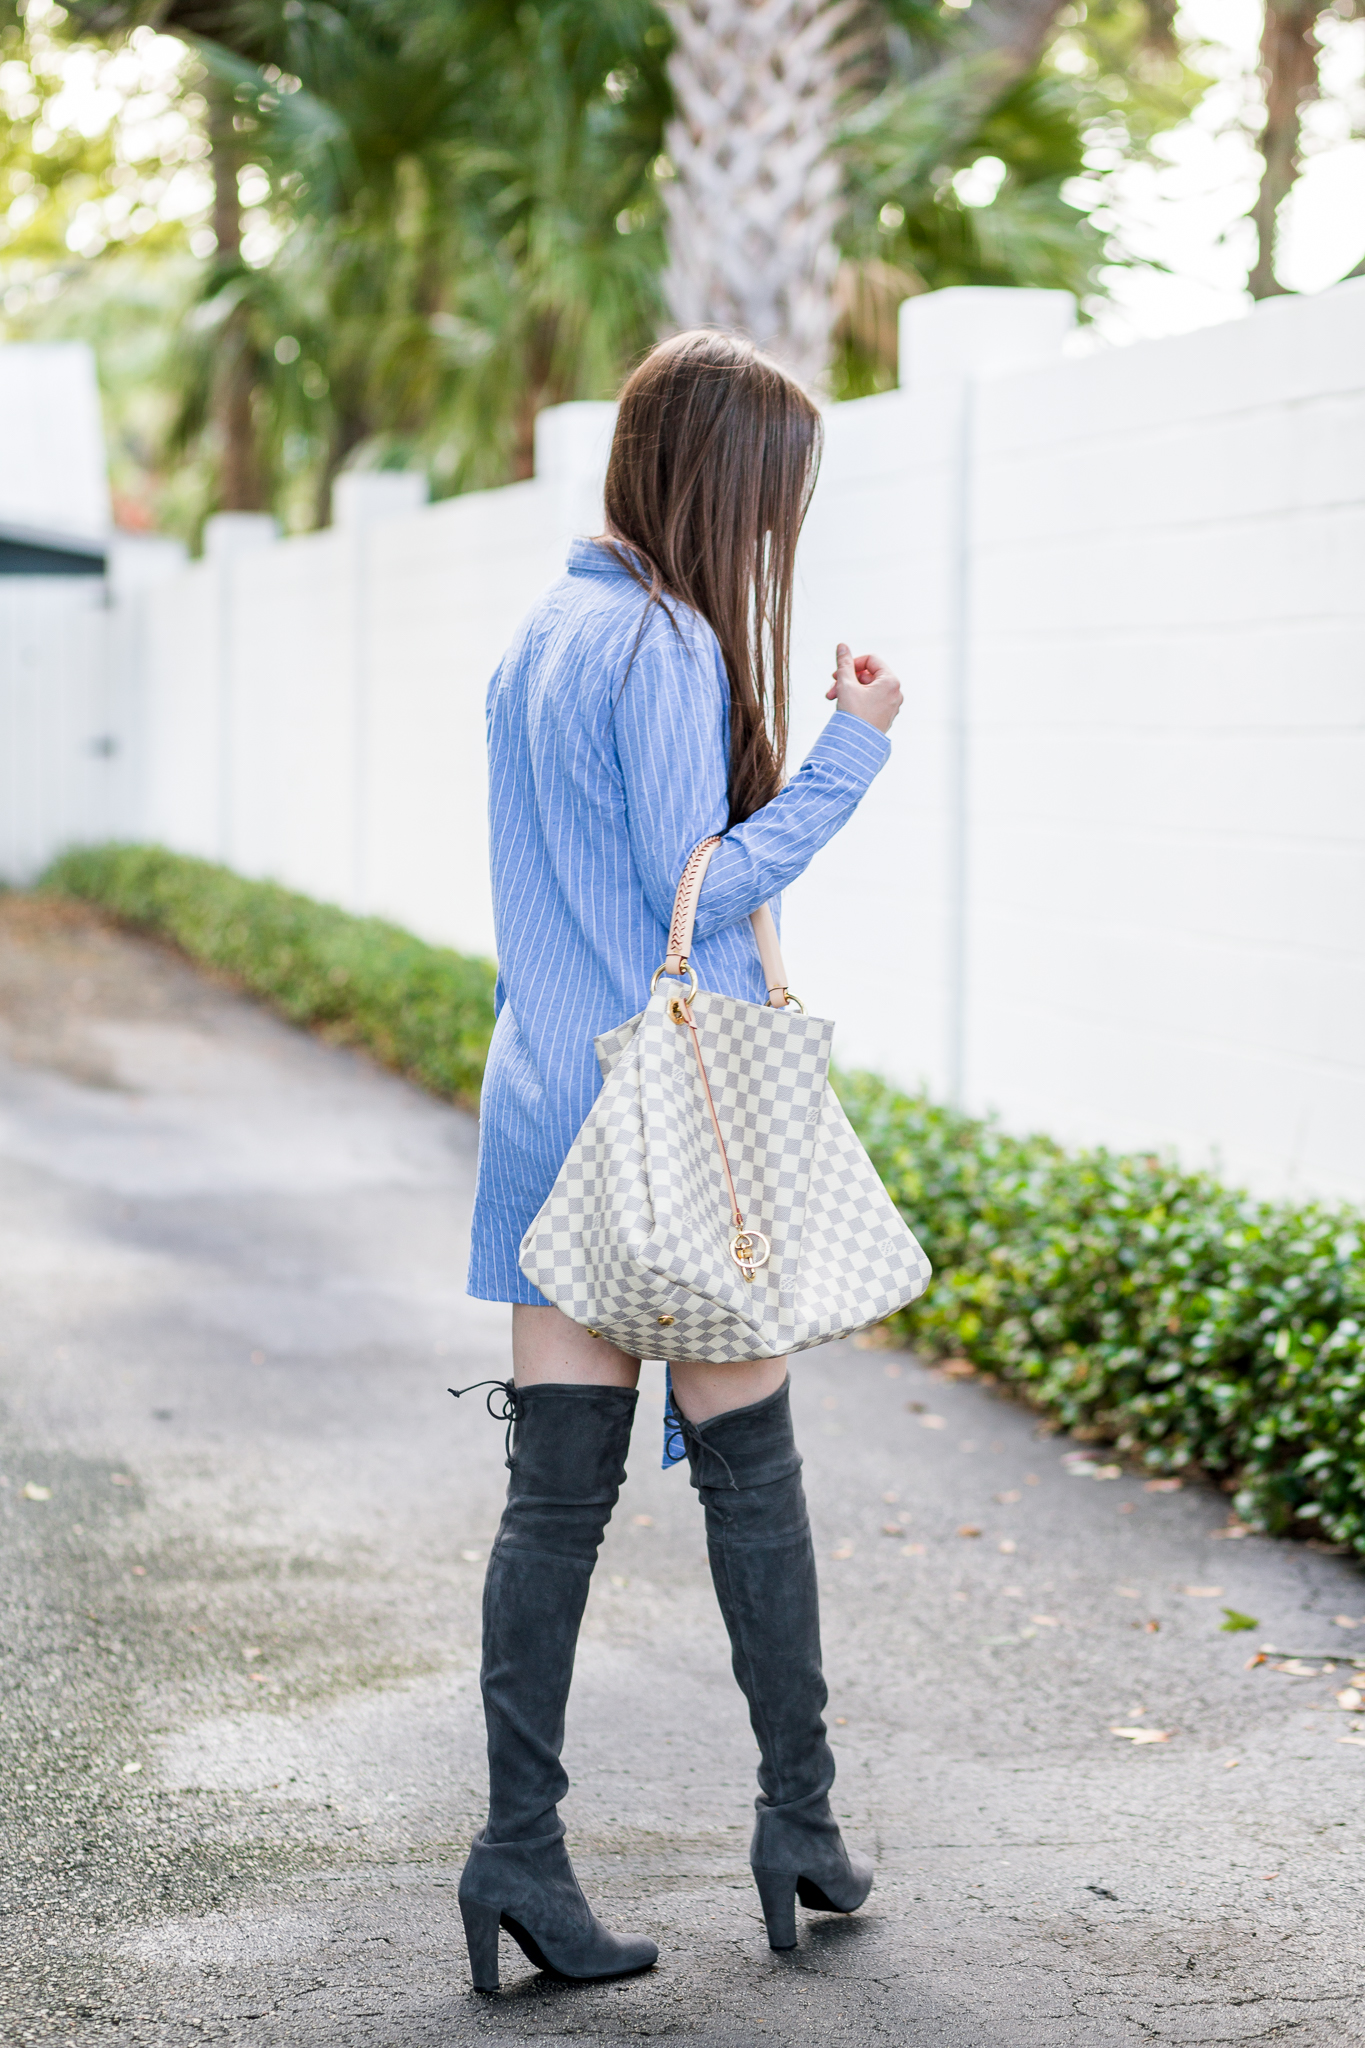 Pinstripe dress and over the knee boots, tie shirt dress, shirtdress, over the knee boots, Stuart weitzman over the knee boots, Stuart weitzman highland, Stuart weitzman hipline, pinstripe dress, fall outfit, Louis Vuitton artsy damier azur